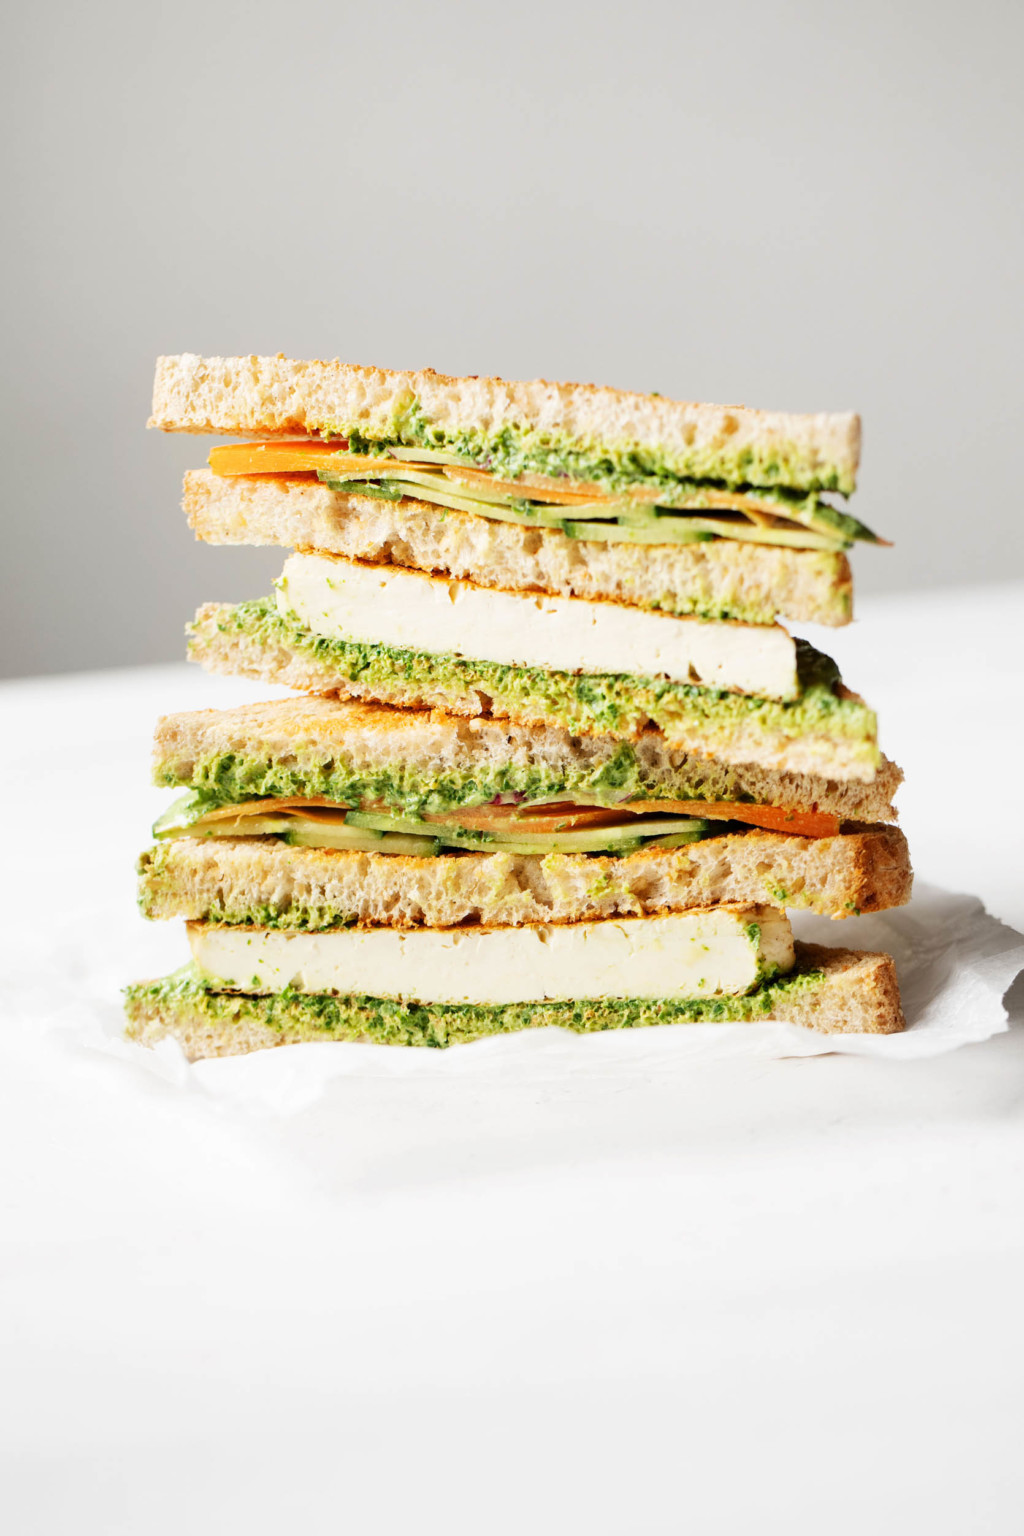 A vegan club sandwich has been sliced in half and stacked. It's filled with grilled tofu and a green sauce.